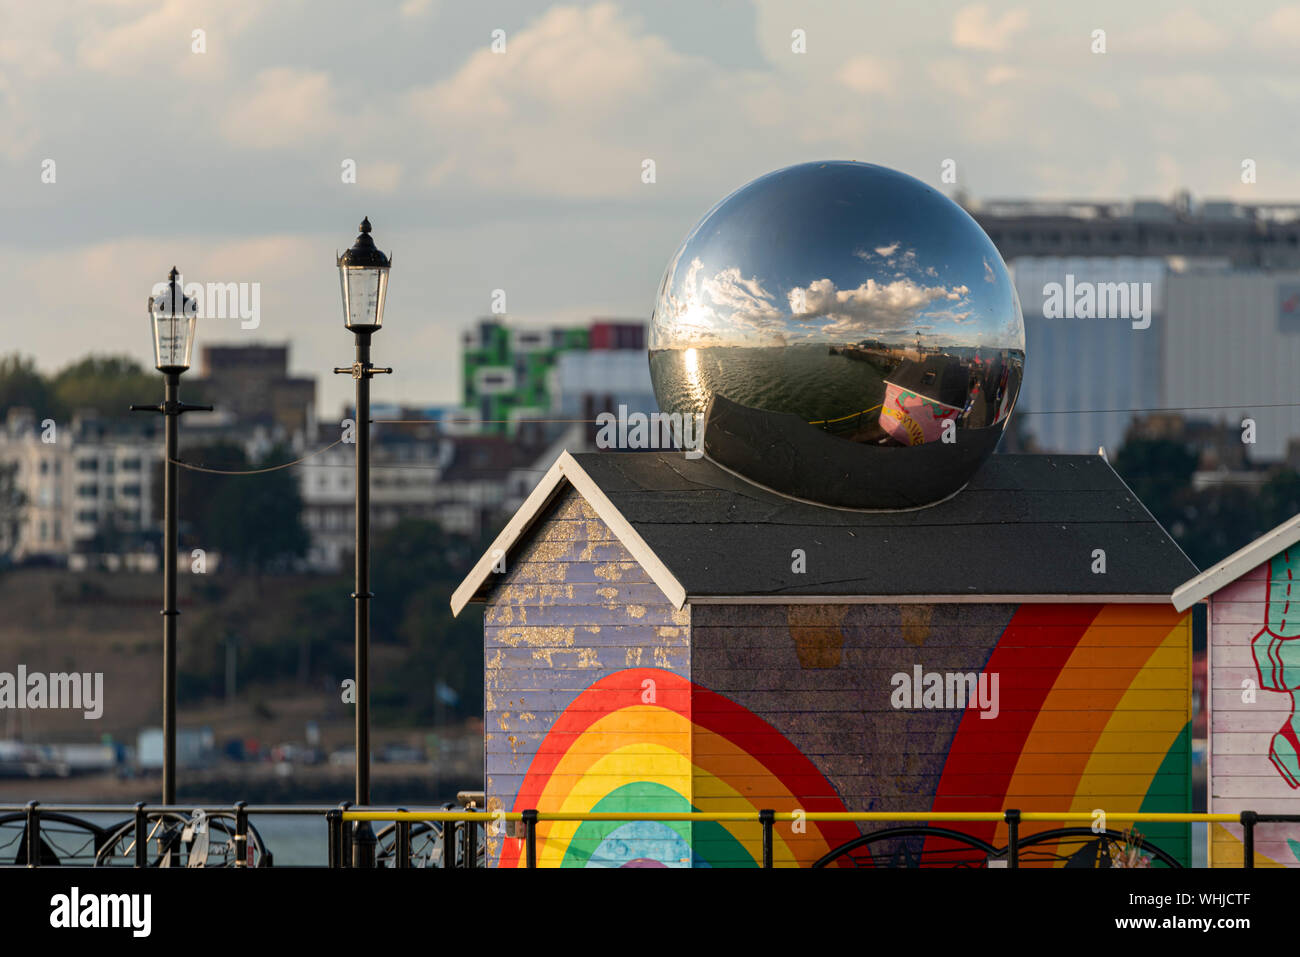 chrome-globe-on-a-multi-coloured-rainbow-hut-on-southend-pier-southend-on-sea-essex-uk-mirror-ball-reflecting-thames-estuary-campus-accomodation-WHJCTF.jpg